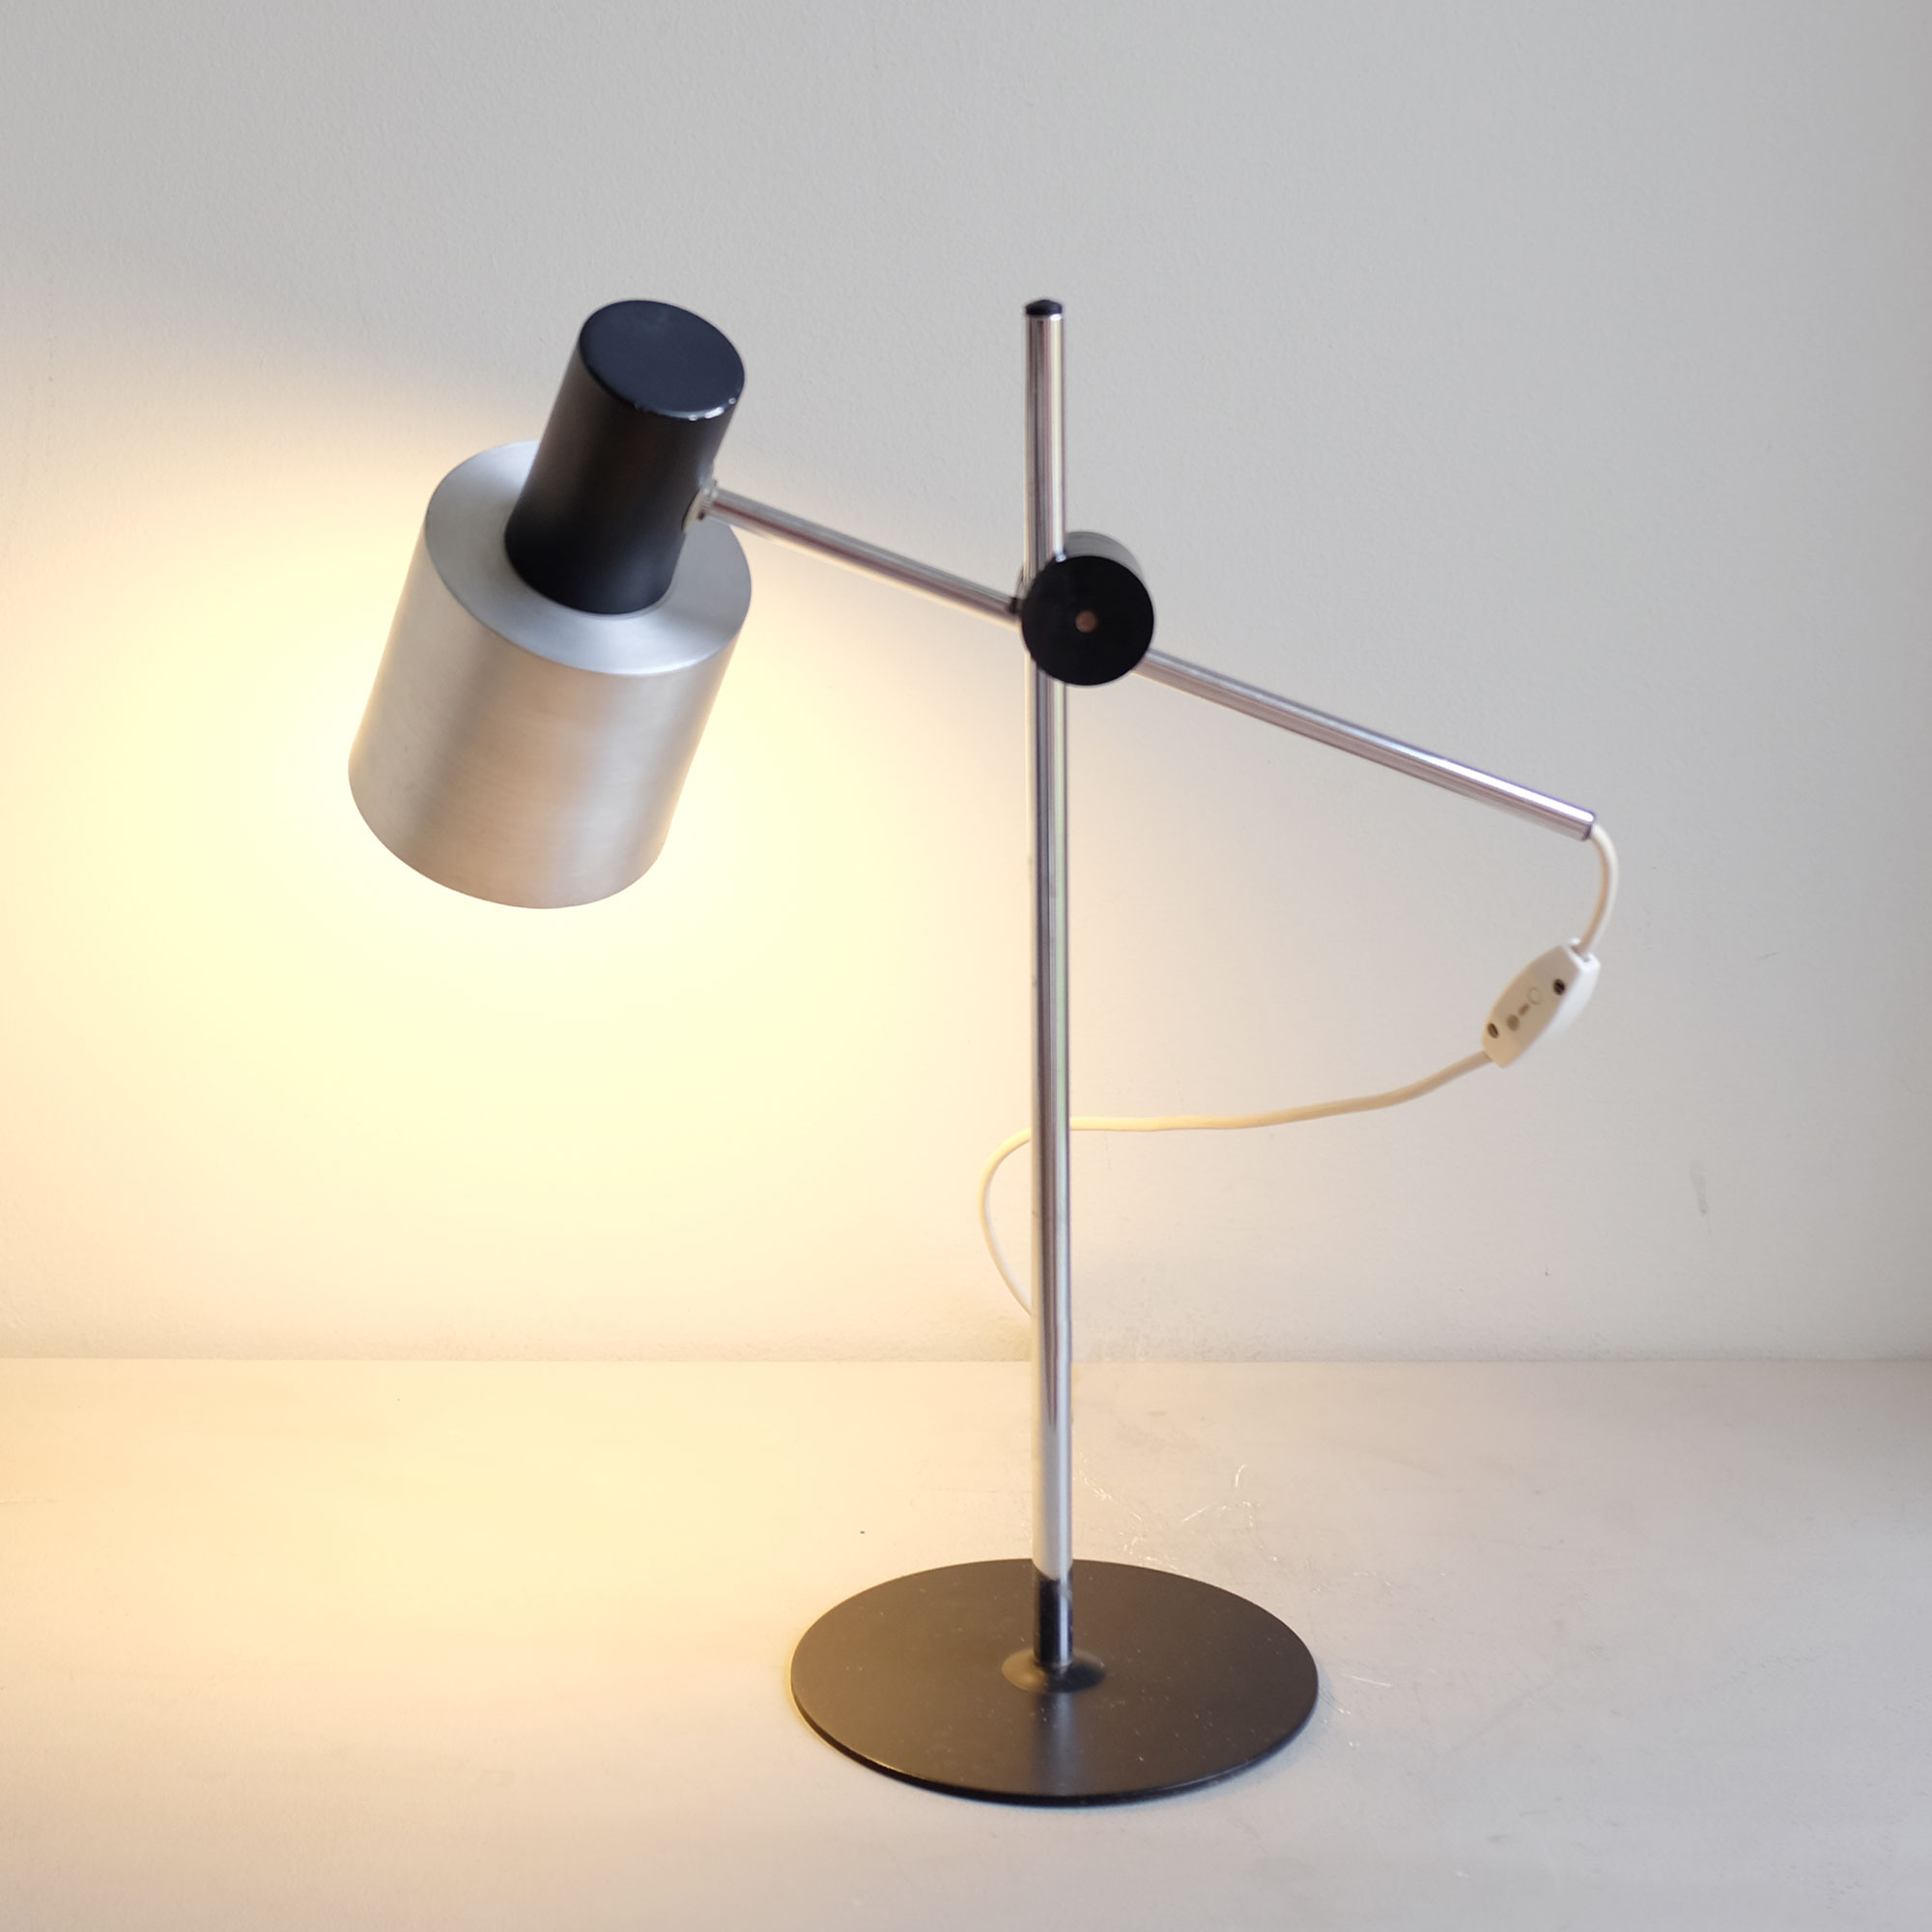 Vintage-Italian-Desk-Lamp-by-Prova-iv